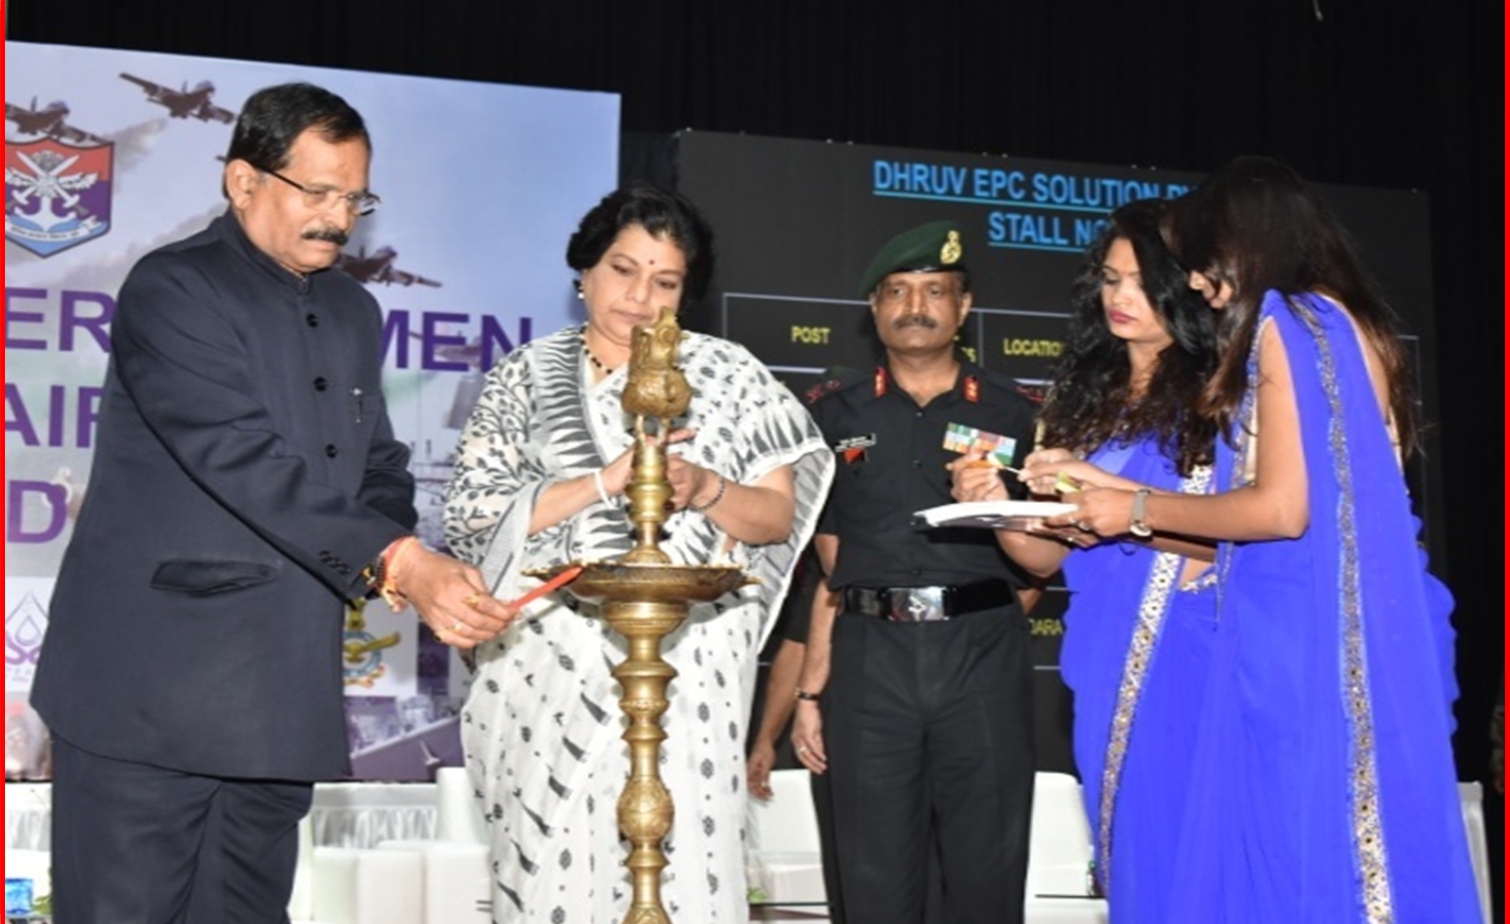 Hon'ble R R M at the inauguration ceremony  of Job Fair at Ahmedabad on 23 Aug 2019.